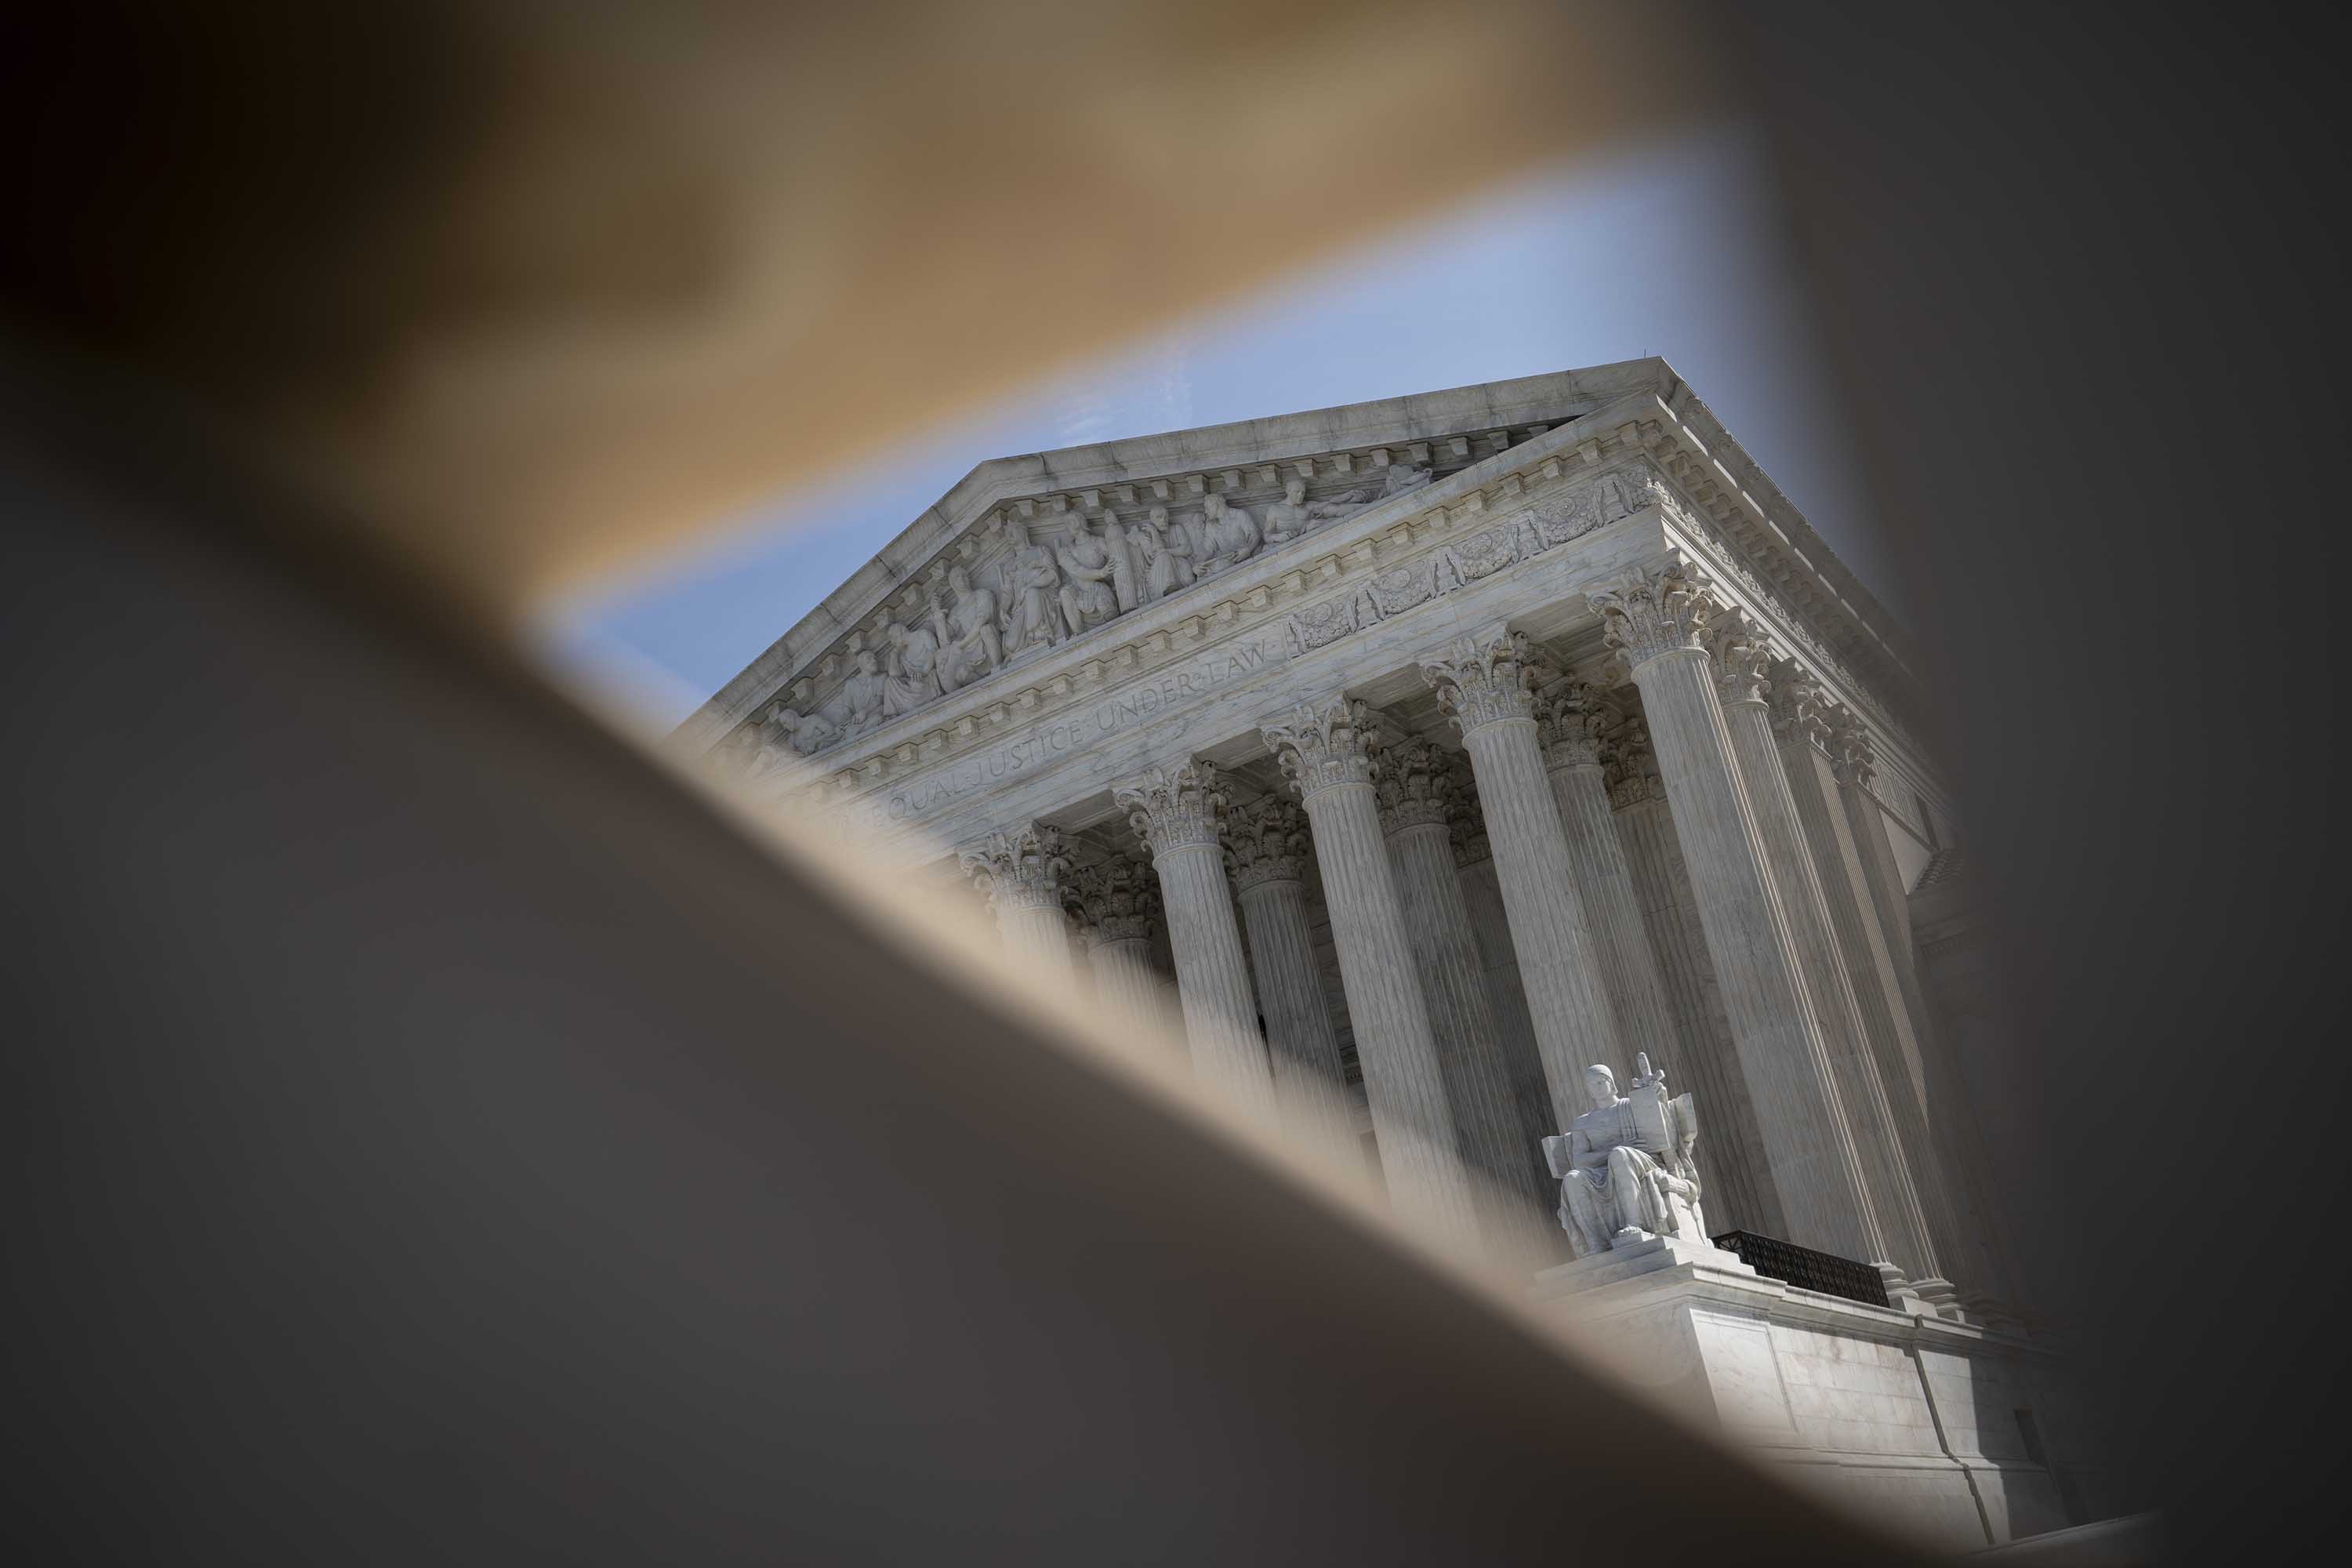 The U.S. Supreme Court is pictured on March 16, in Washington, D.C. The Supreme Court announced on Monday that it would postpone oral arguments for its March session because of the coronavirus outbreak.